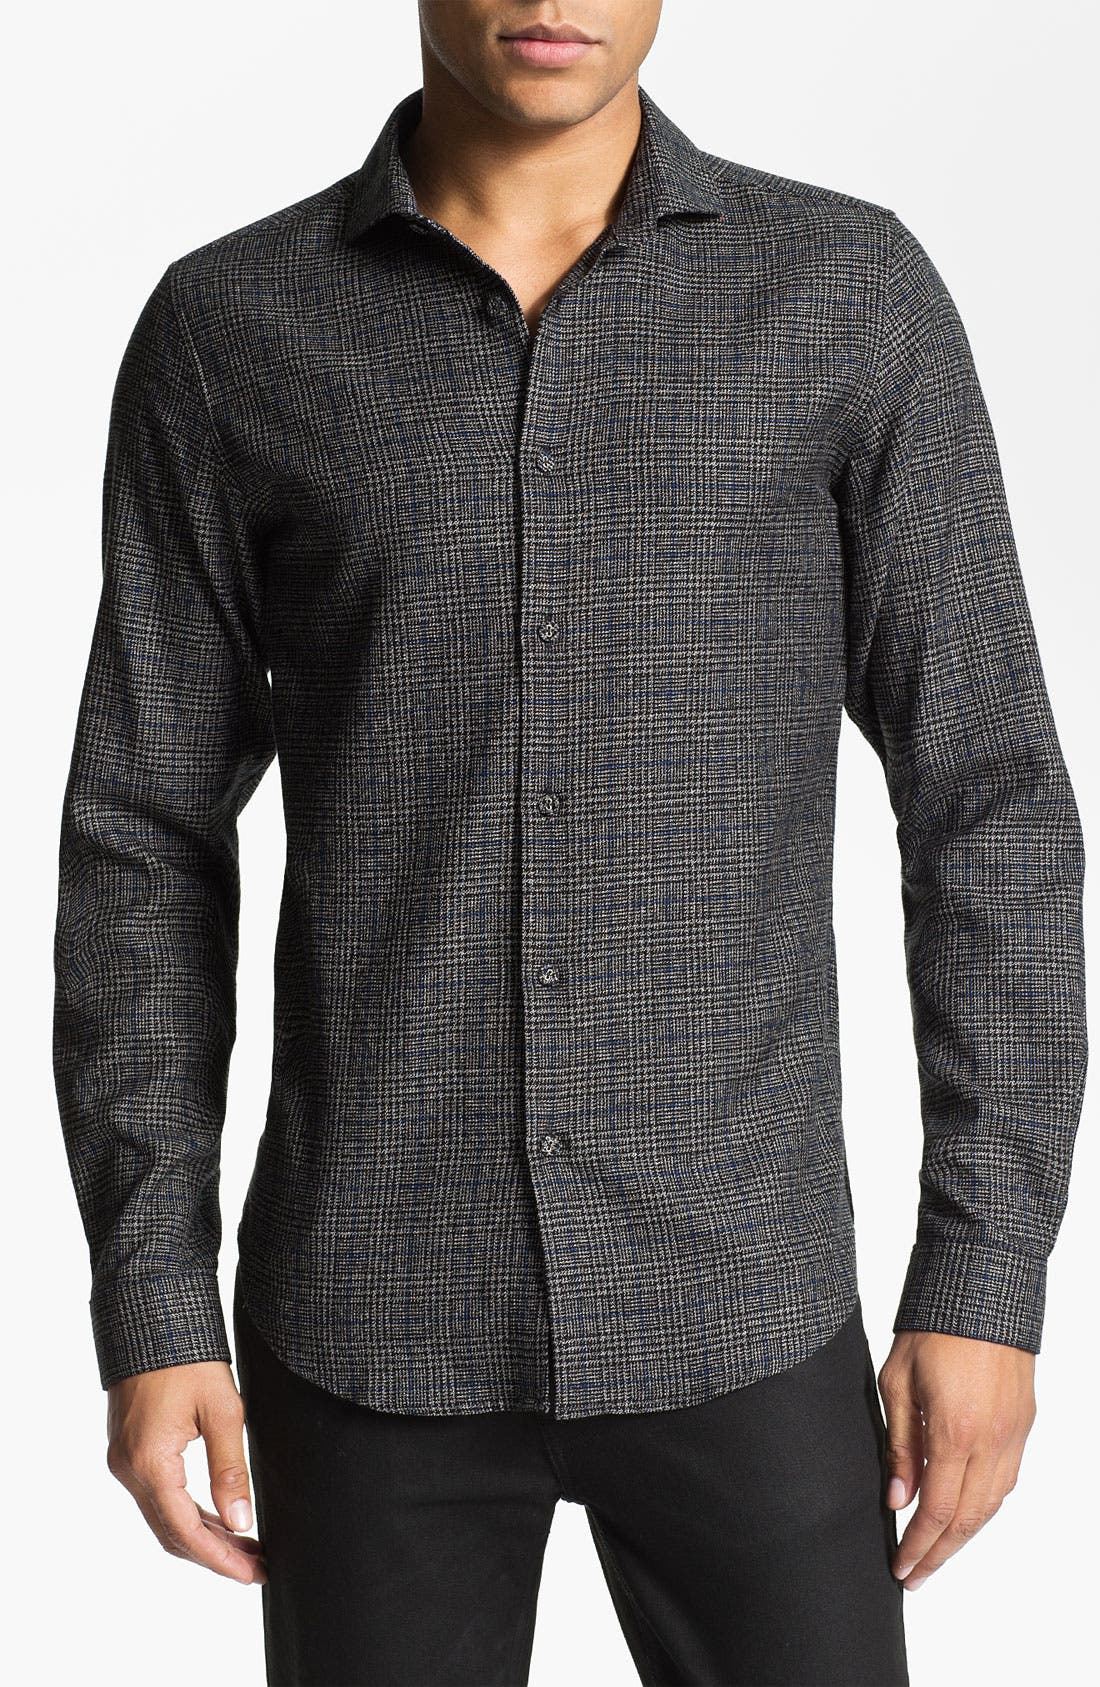 Alternate Image 1 Selected - PLECTRUM by Ben Sherman Plaid Woven Shirt